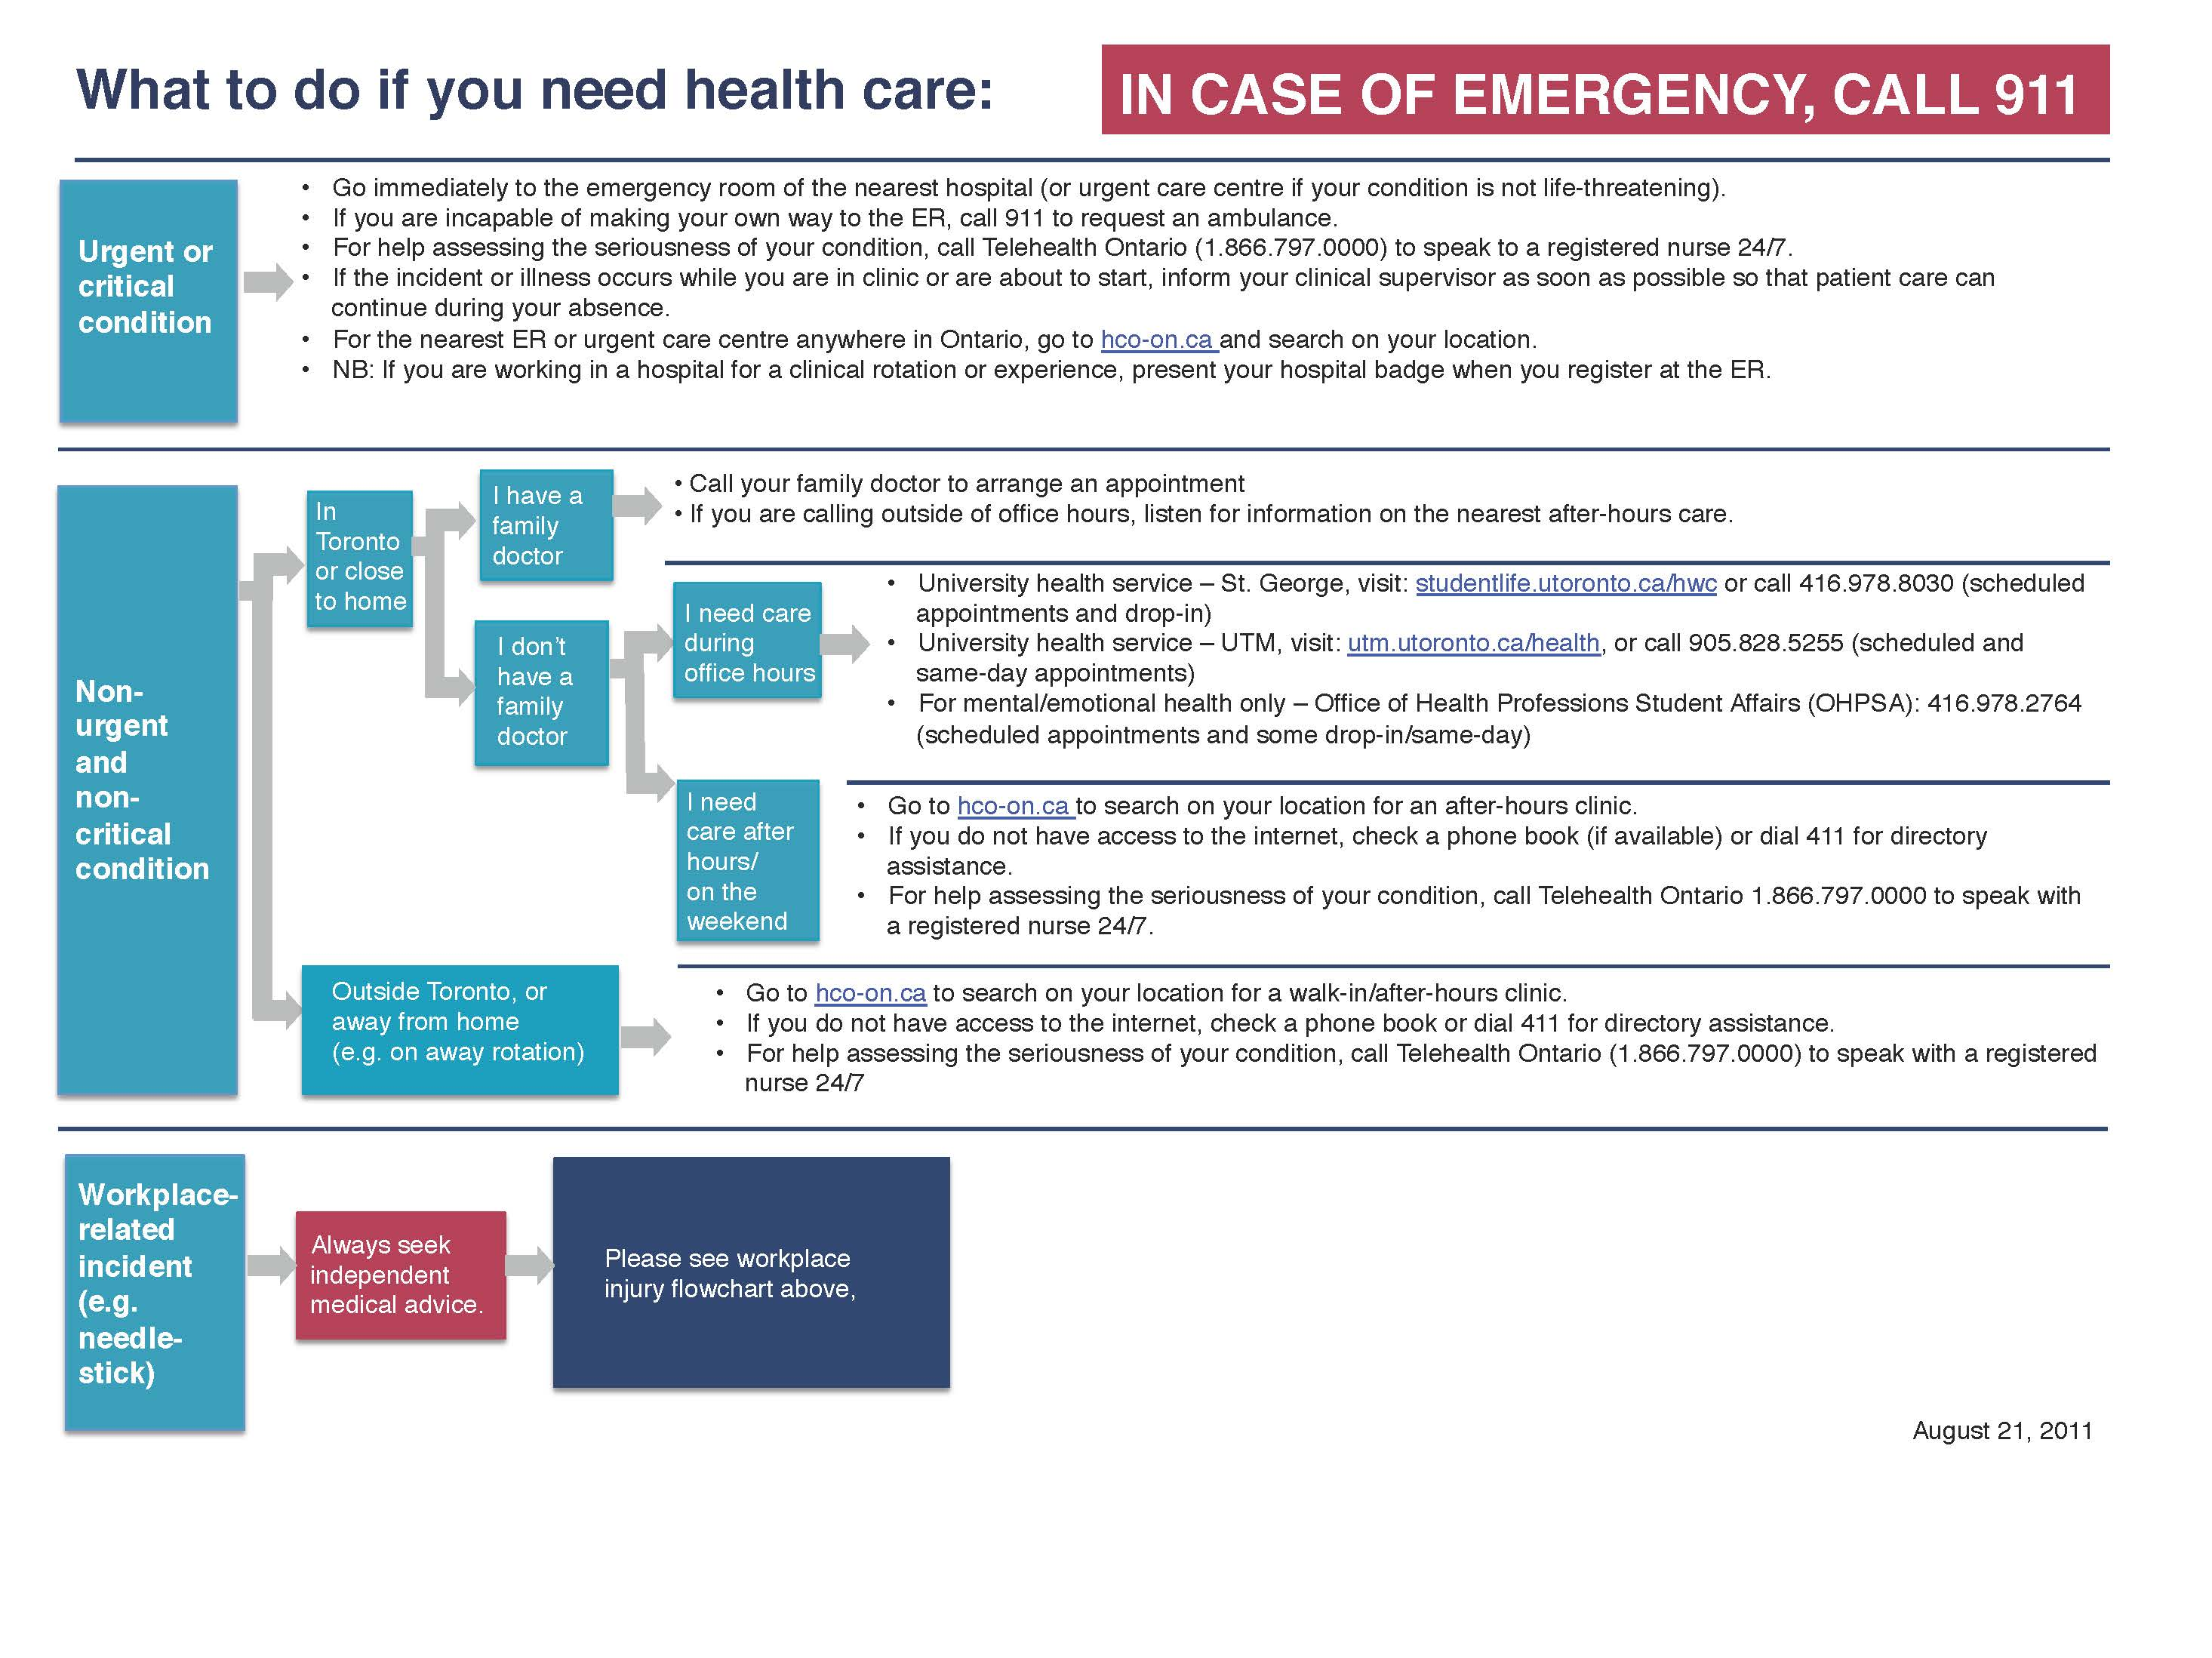 Accessing health care flowchart